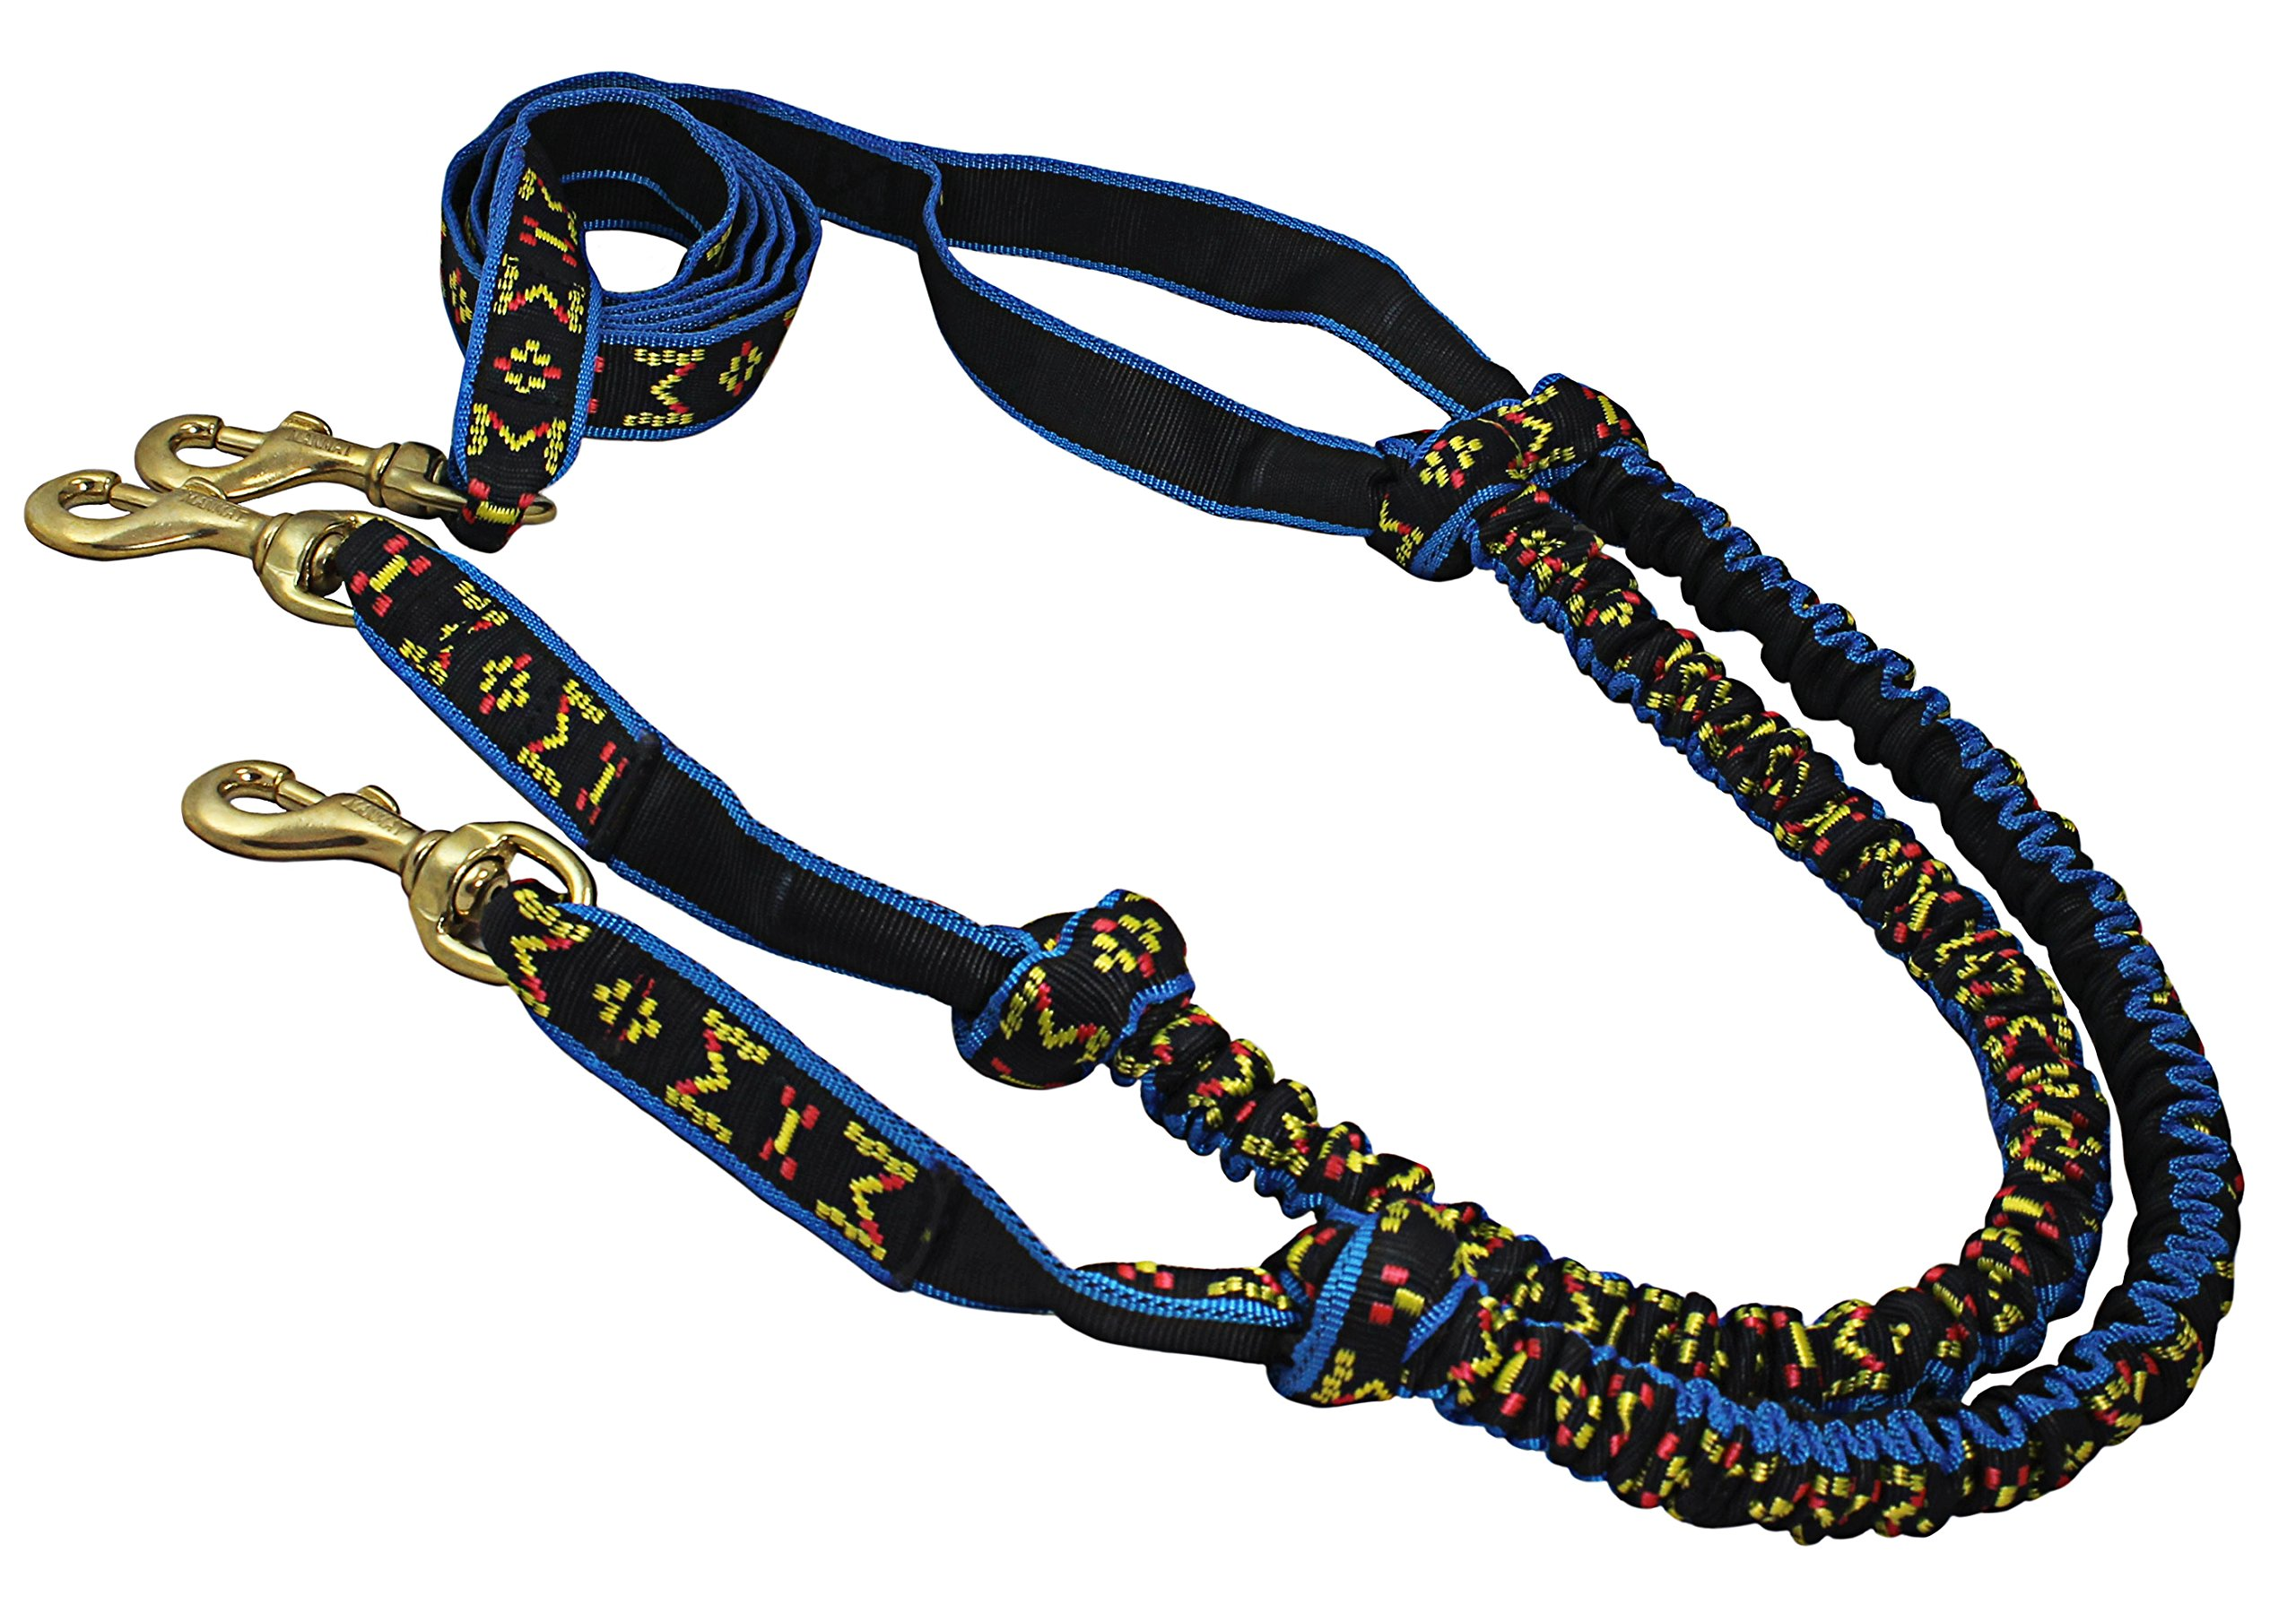 Shock Absorbing Bikejoring Skijoring Bungee Two Dogs Line 1'' Wide 8-Ft Long by Dogs My Love (Image #1)